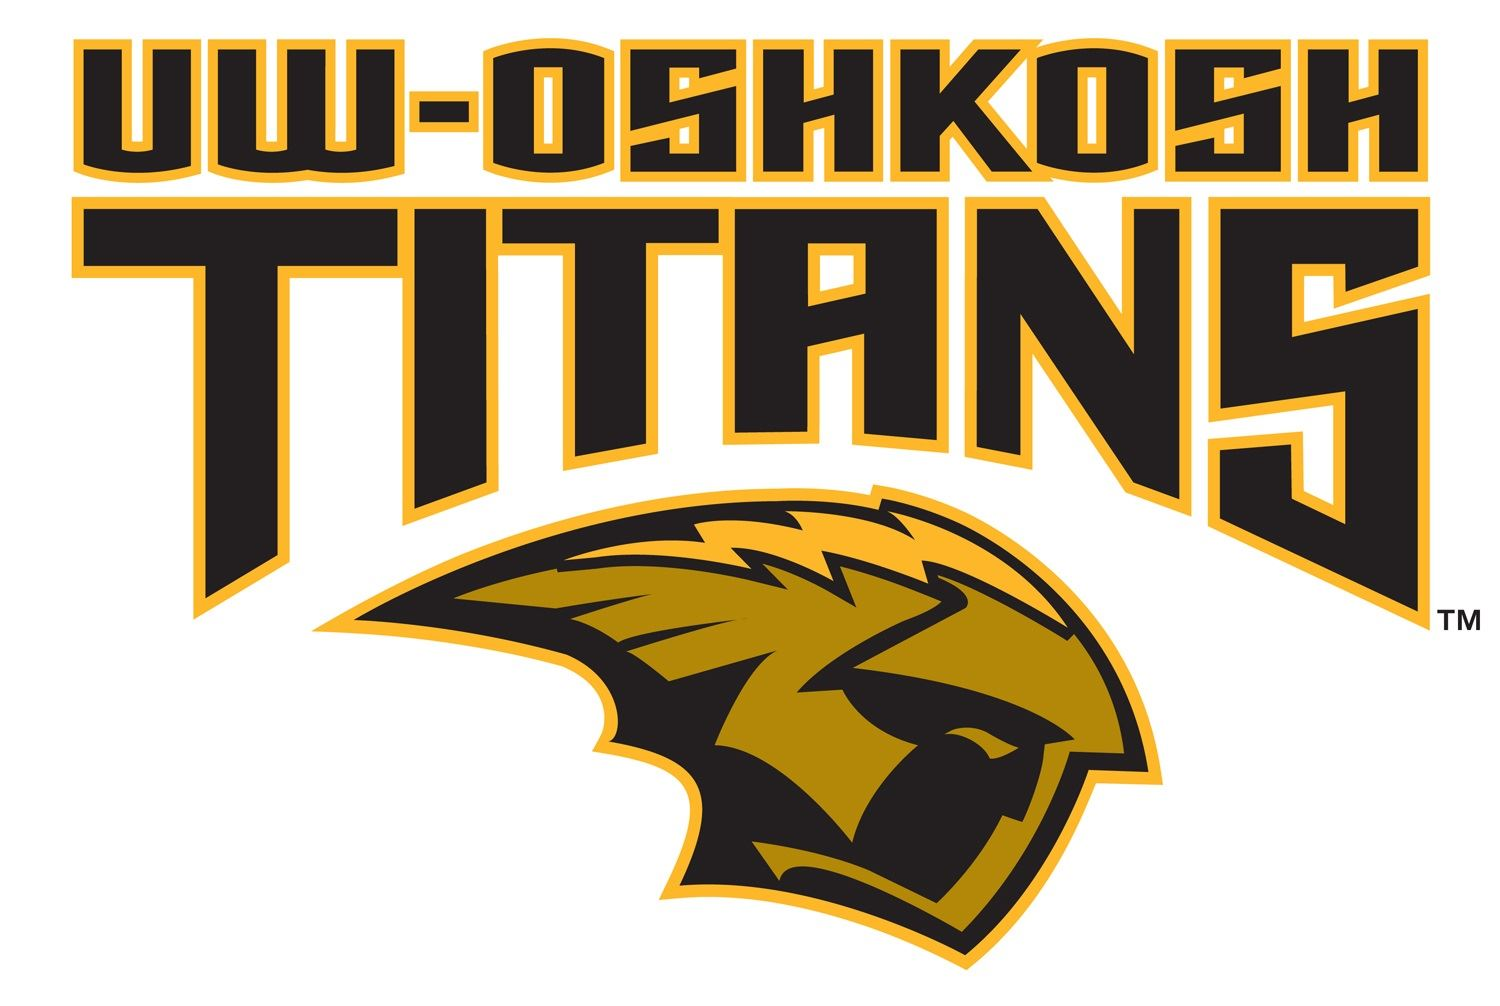 University of Wisconsin-Oshkosh - UWO VB